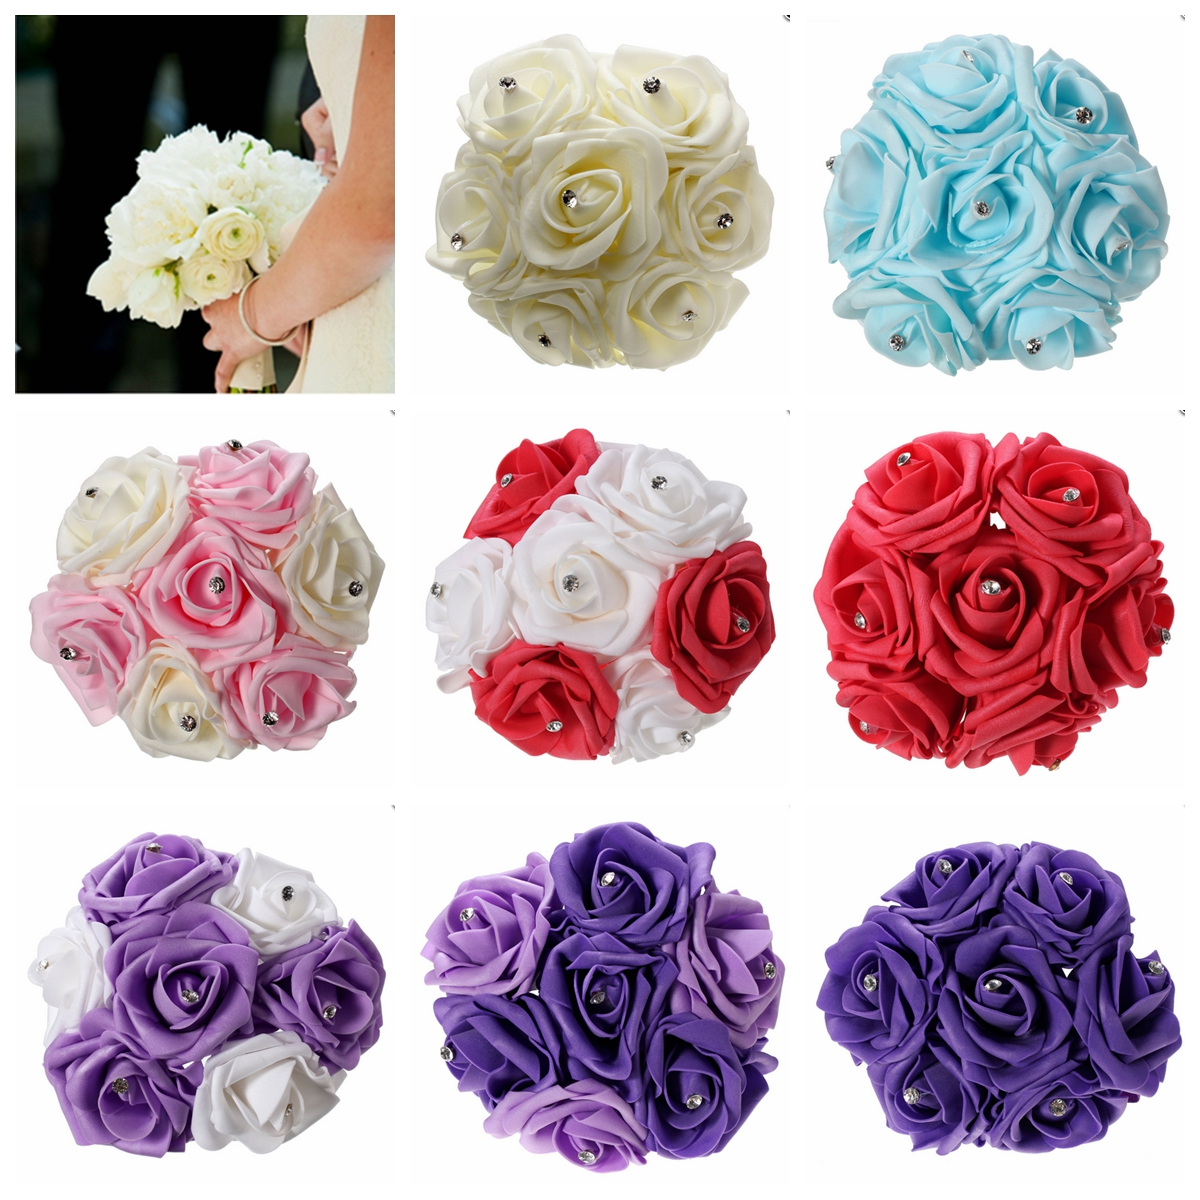 1 Bunch Aartificial Rose Flower Craft Flower Bridal Rhinestone Crystal Bouquet Wedding Party Decor